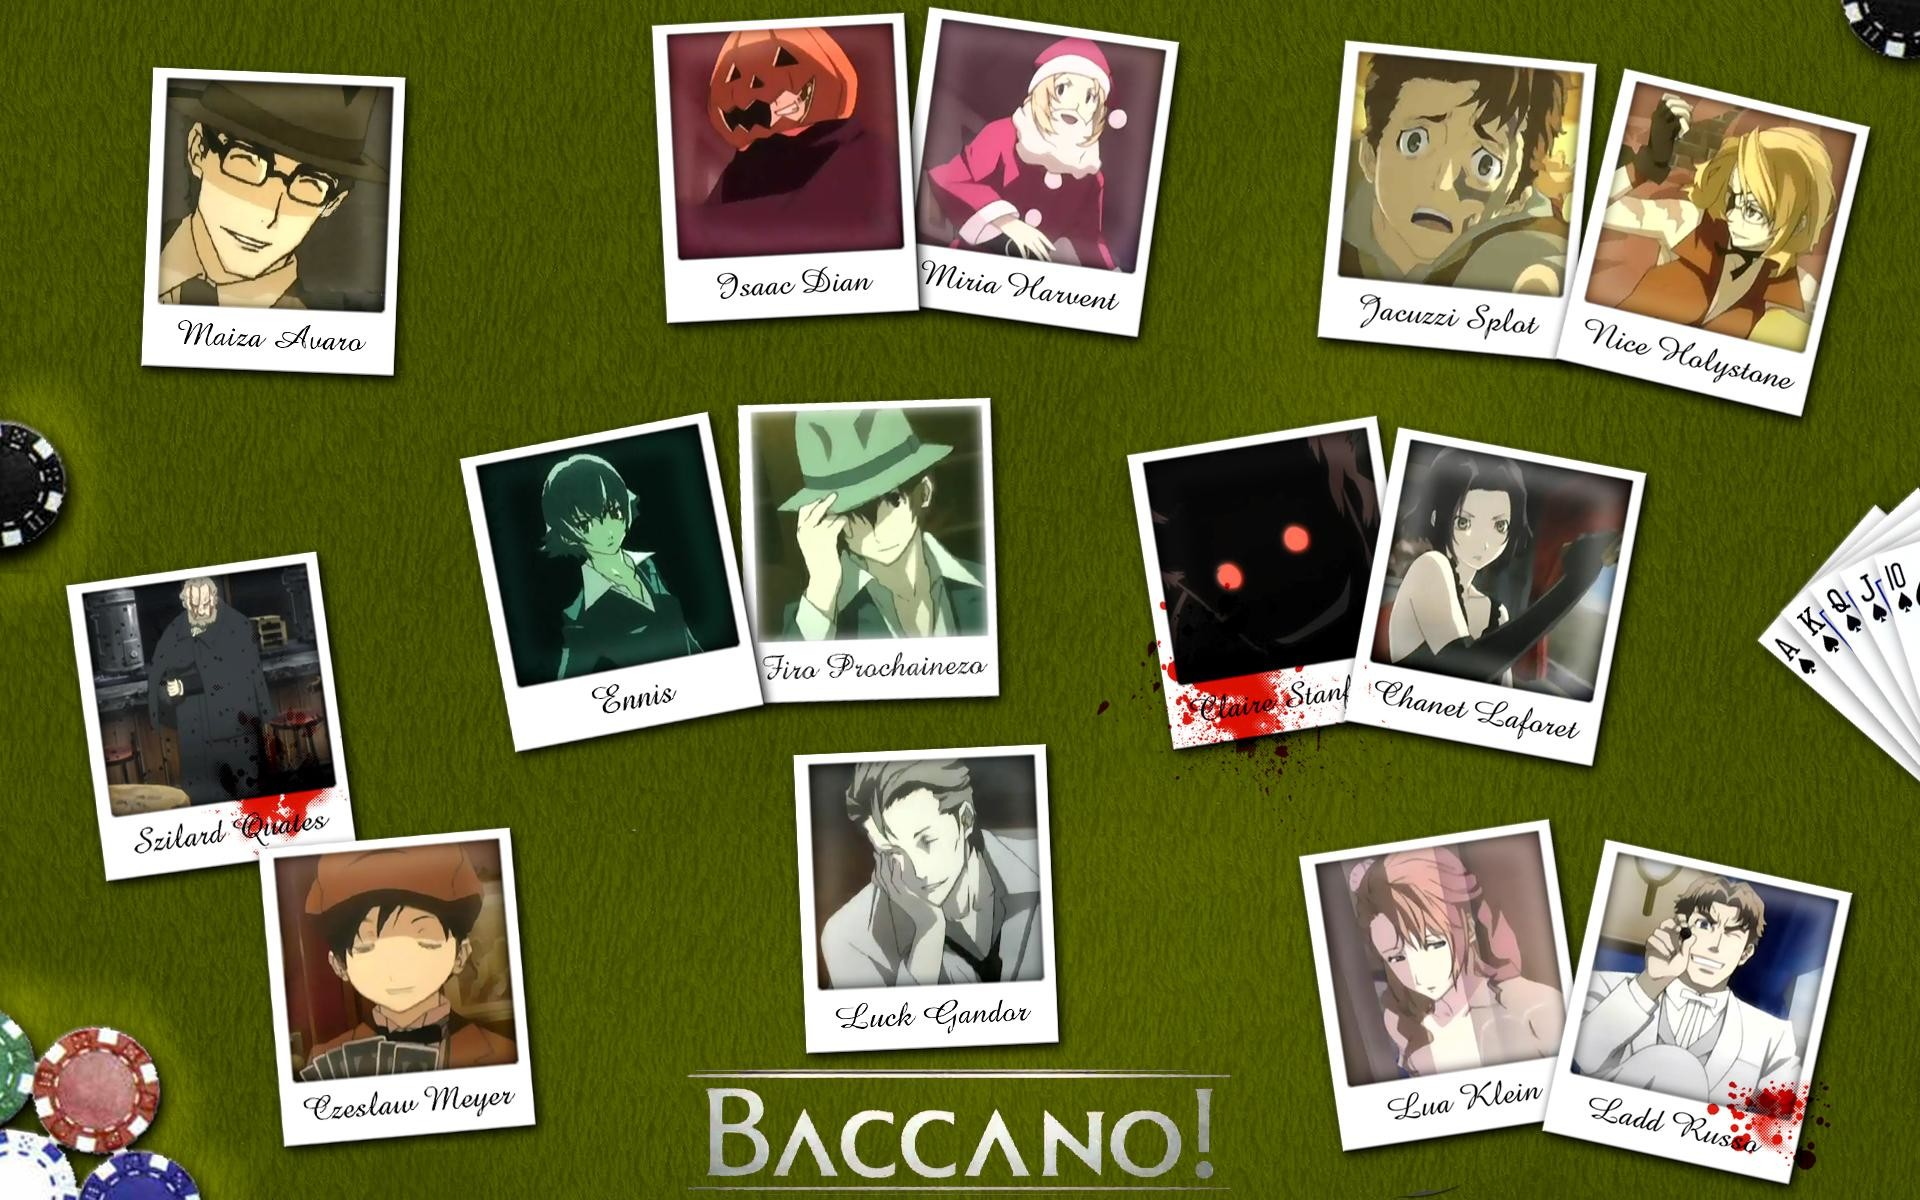 1920x1200 Baccano! wallpapers HD